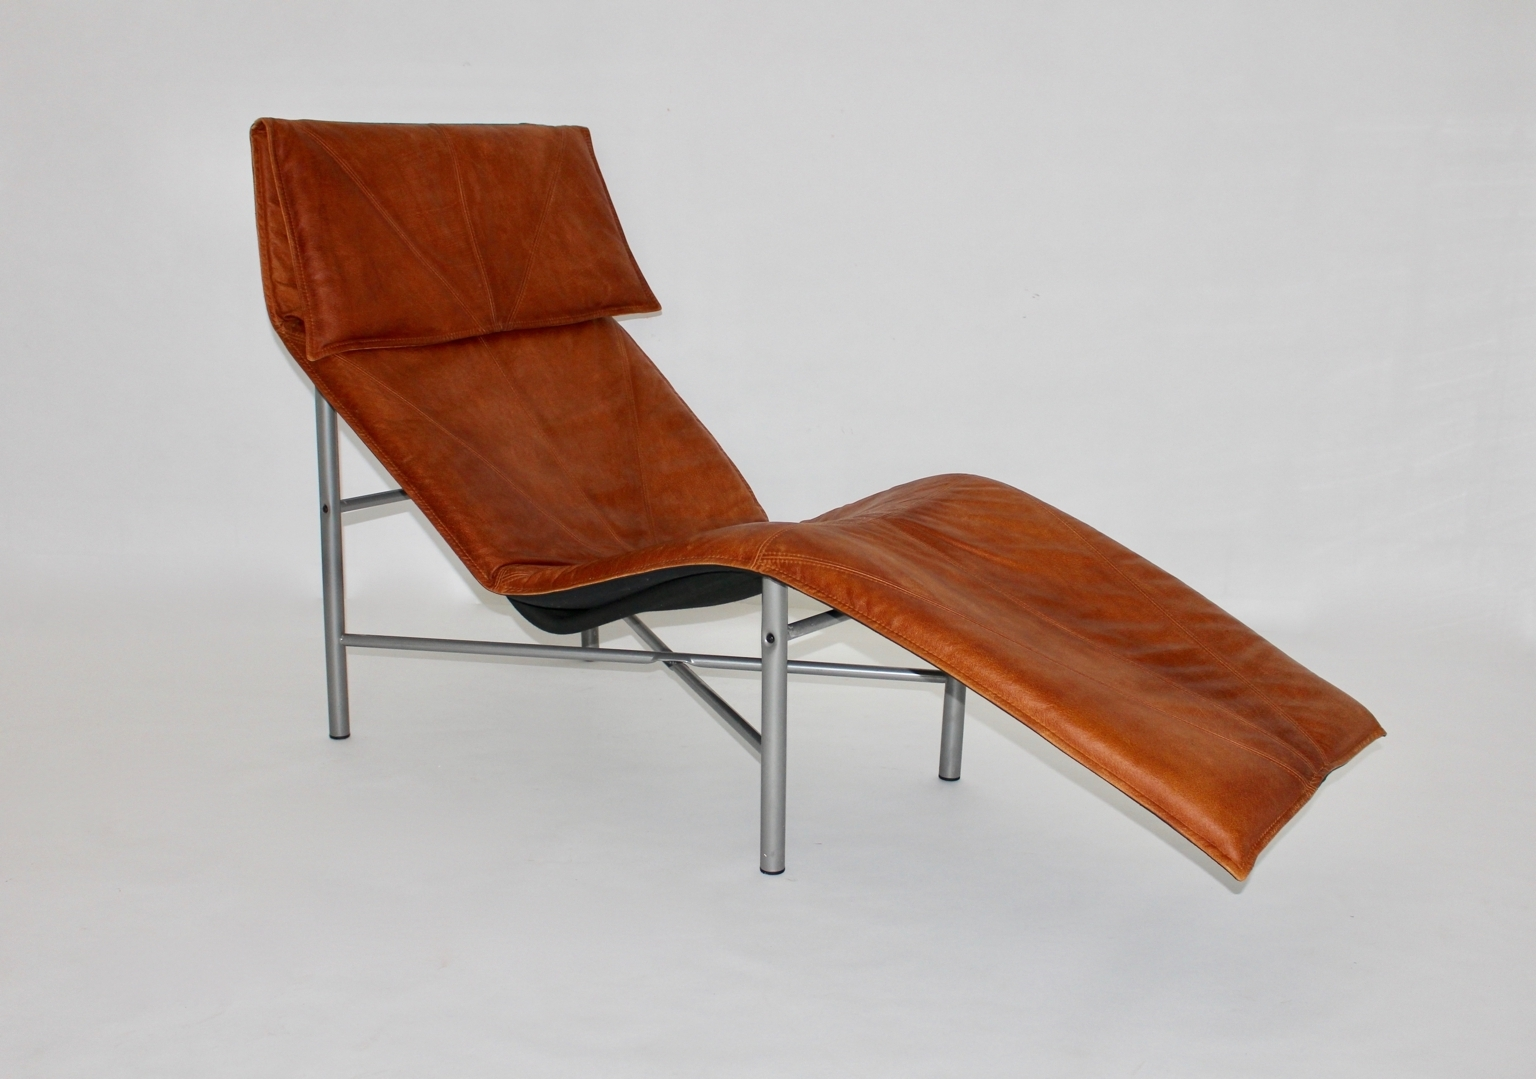 Leather Chaise Lounges Inside Latest Swedish Cognac Leather Chaise Loungetord Bjorklund, 1970S For (View 9 of 15)